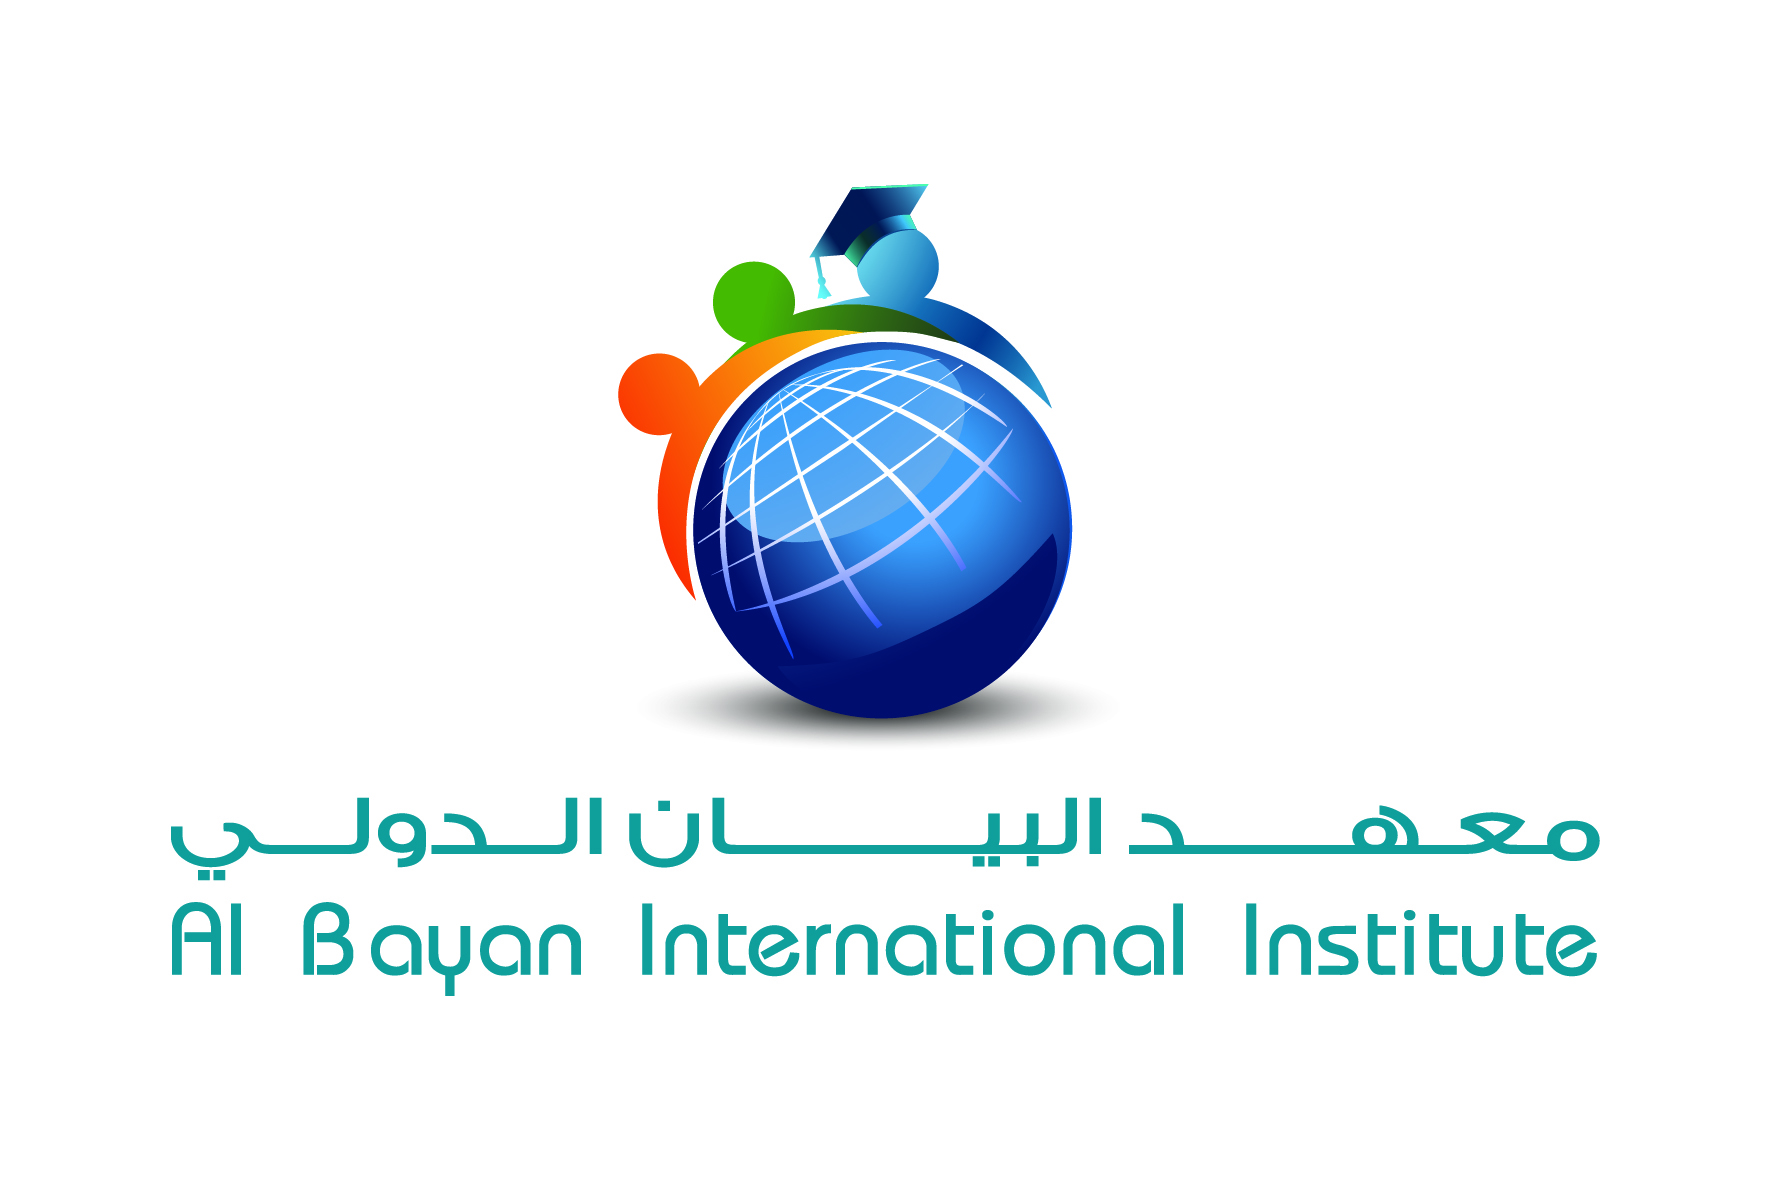 More about Al Bayan International Institute